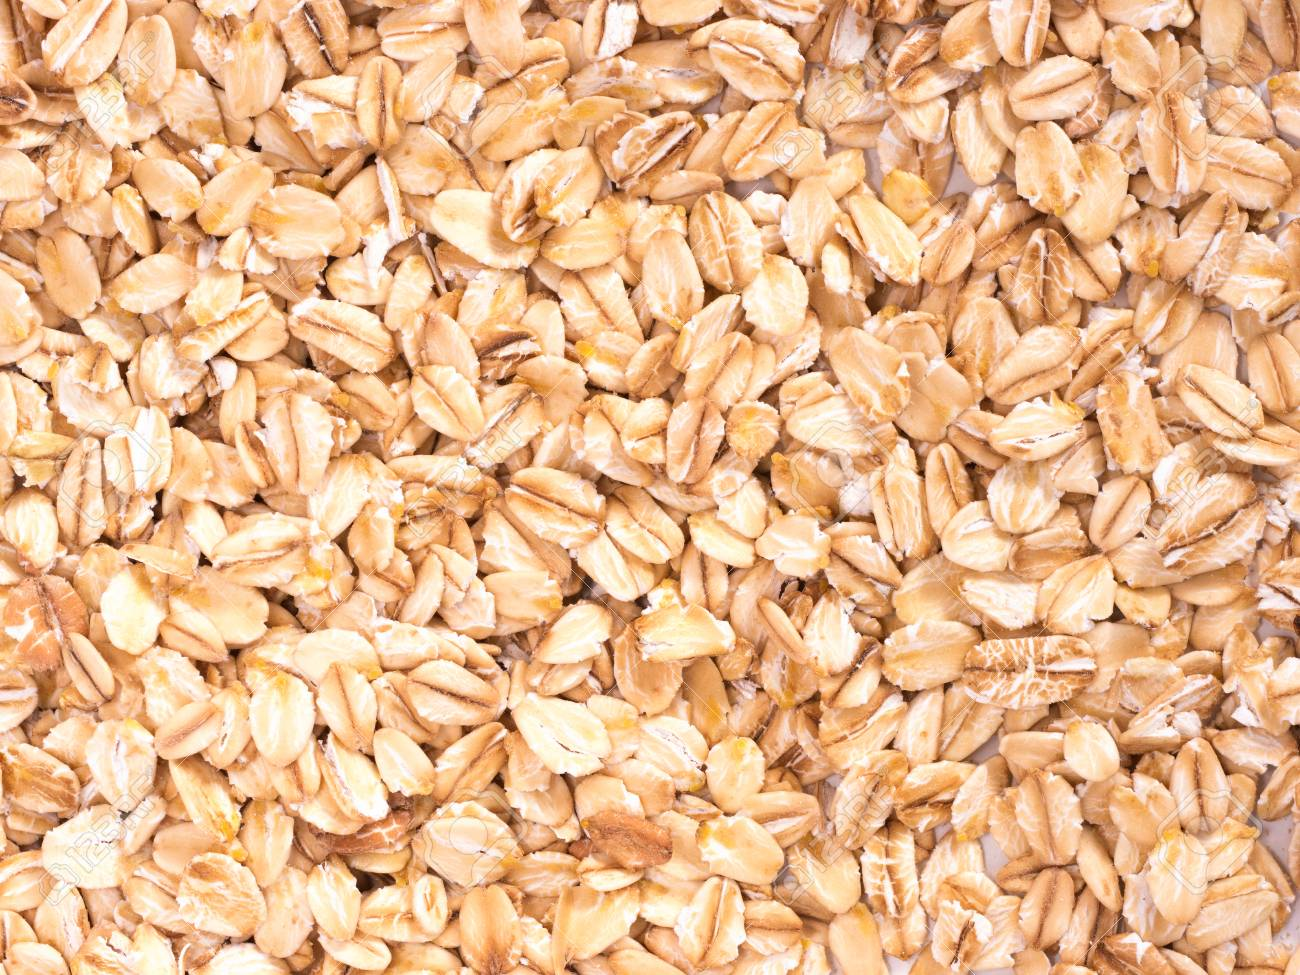 Oatmeal Background Stock Photo Picture And Royalty Image 1300x975